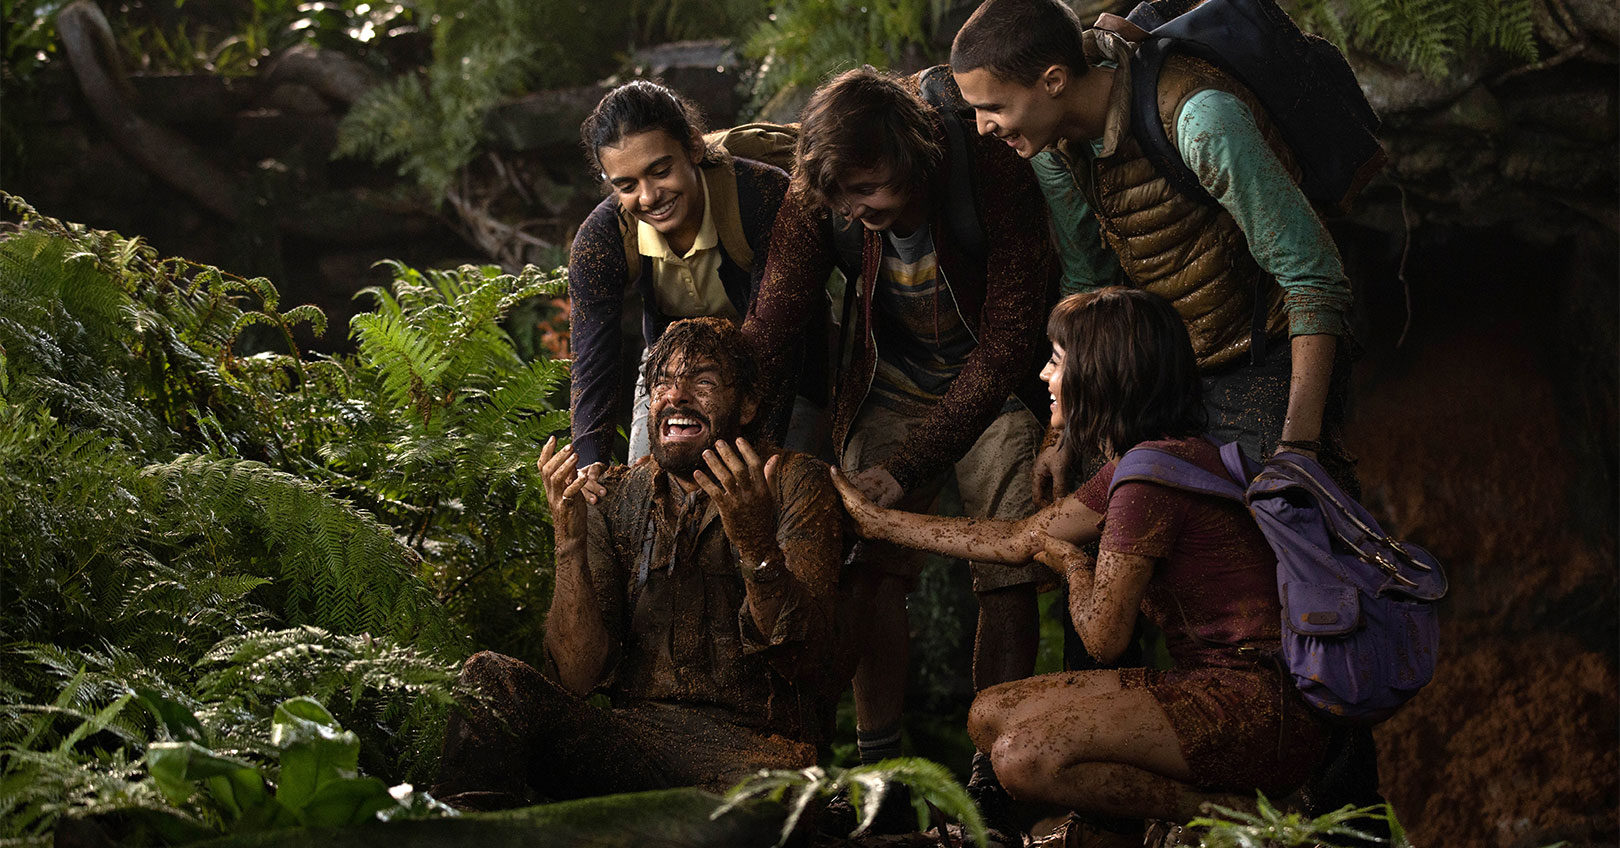 Dora and the Lost City of Gold - Eugenio Derbez, Madeleine Madden, Nicholas Coombe, Jeff Wahlberg, and Isabela Moner